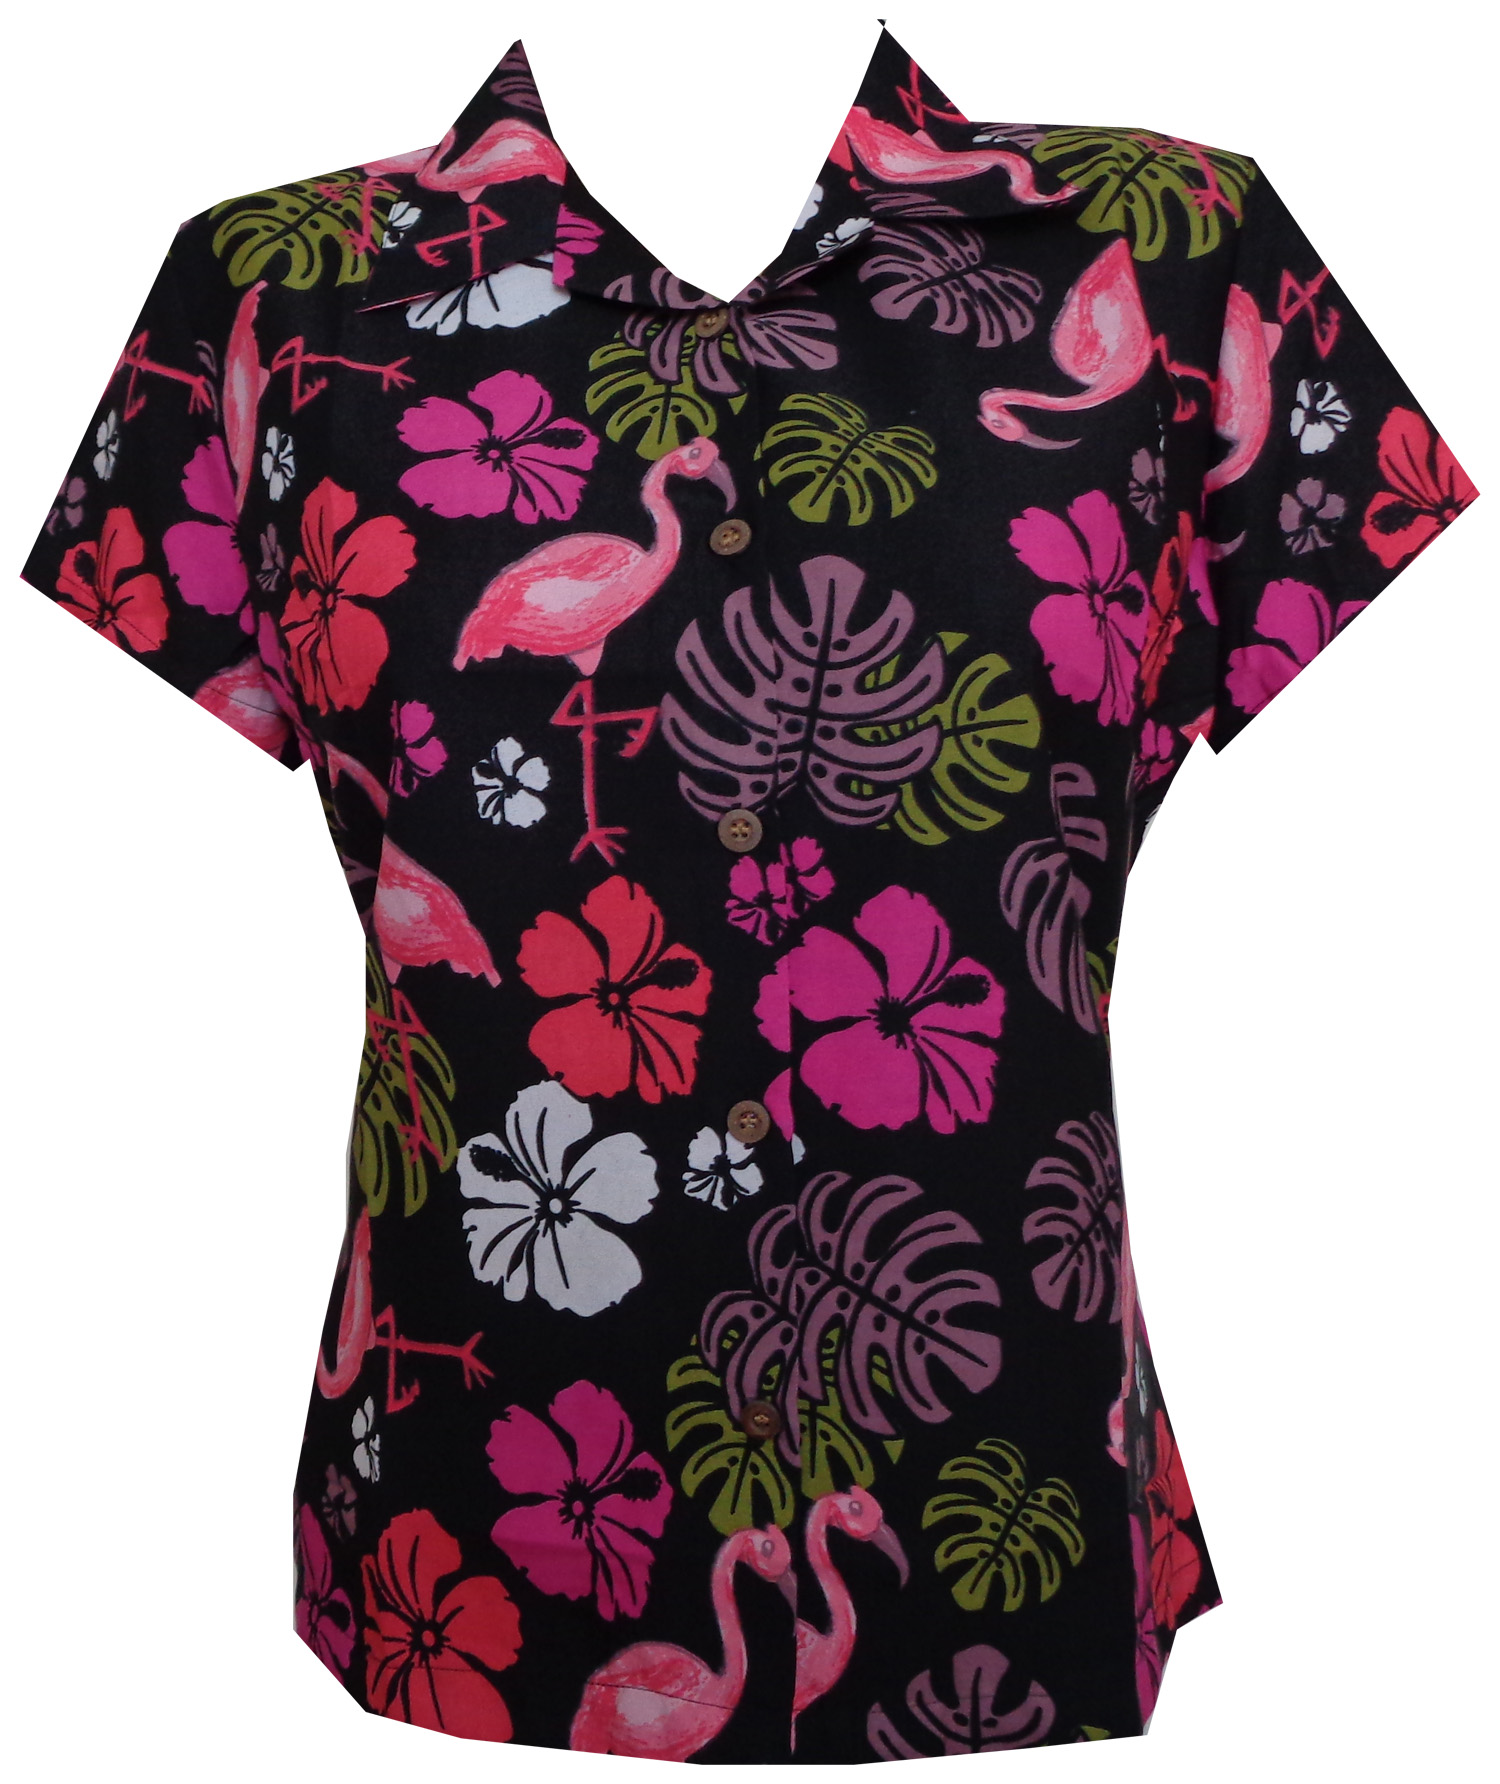 fecfcb3174f248 Hawaiian Shirt 37W Women Flamingo Leaf Print Aloha Beach Blouse ...